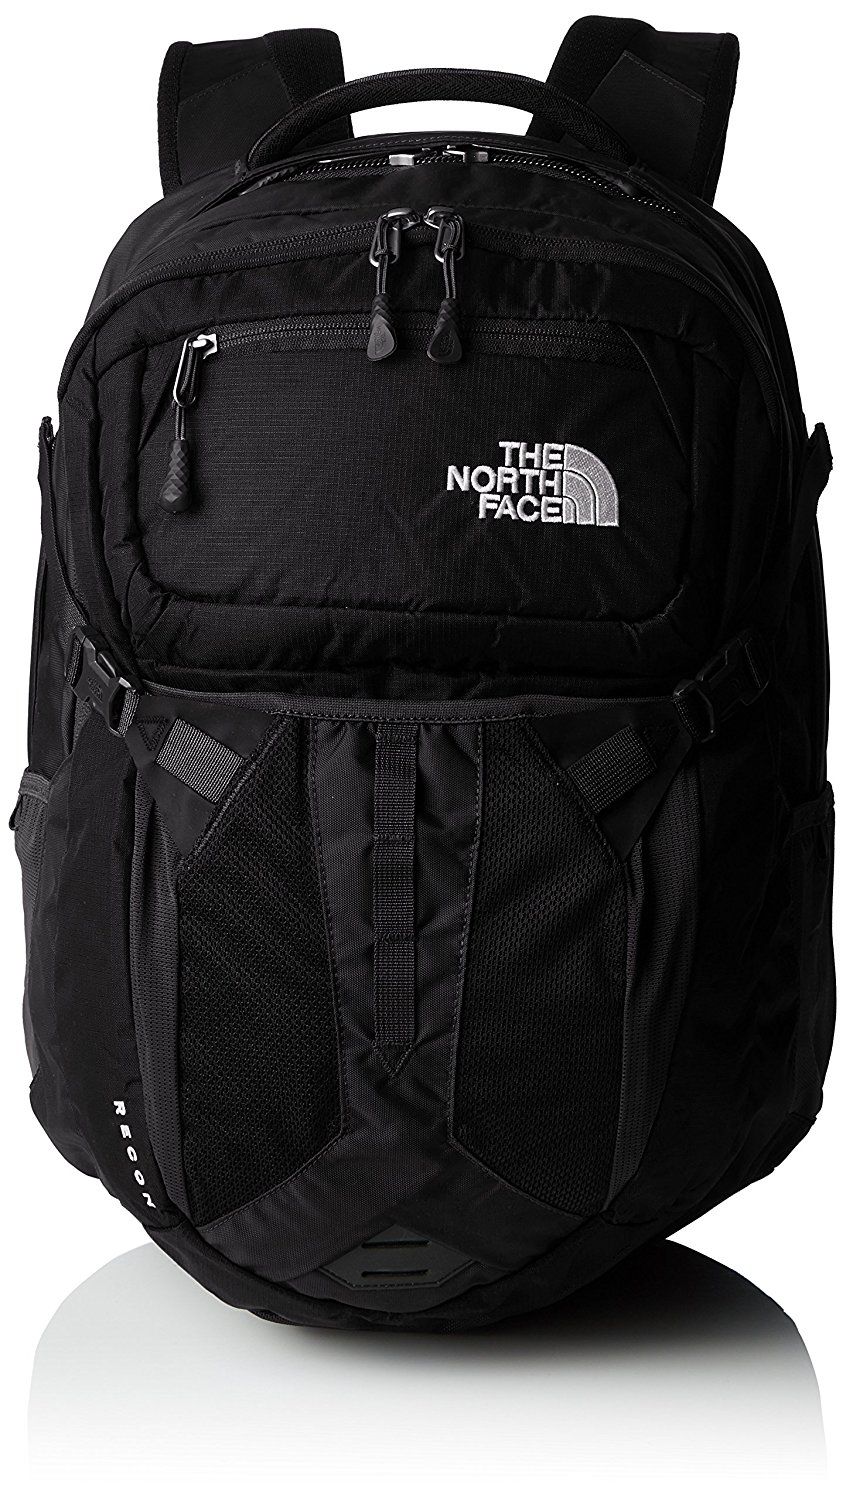 North Face Recon backpack daypack